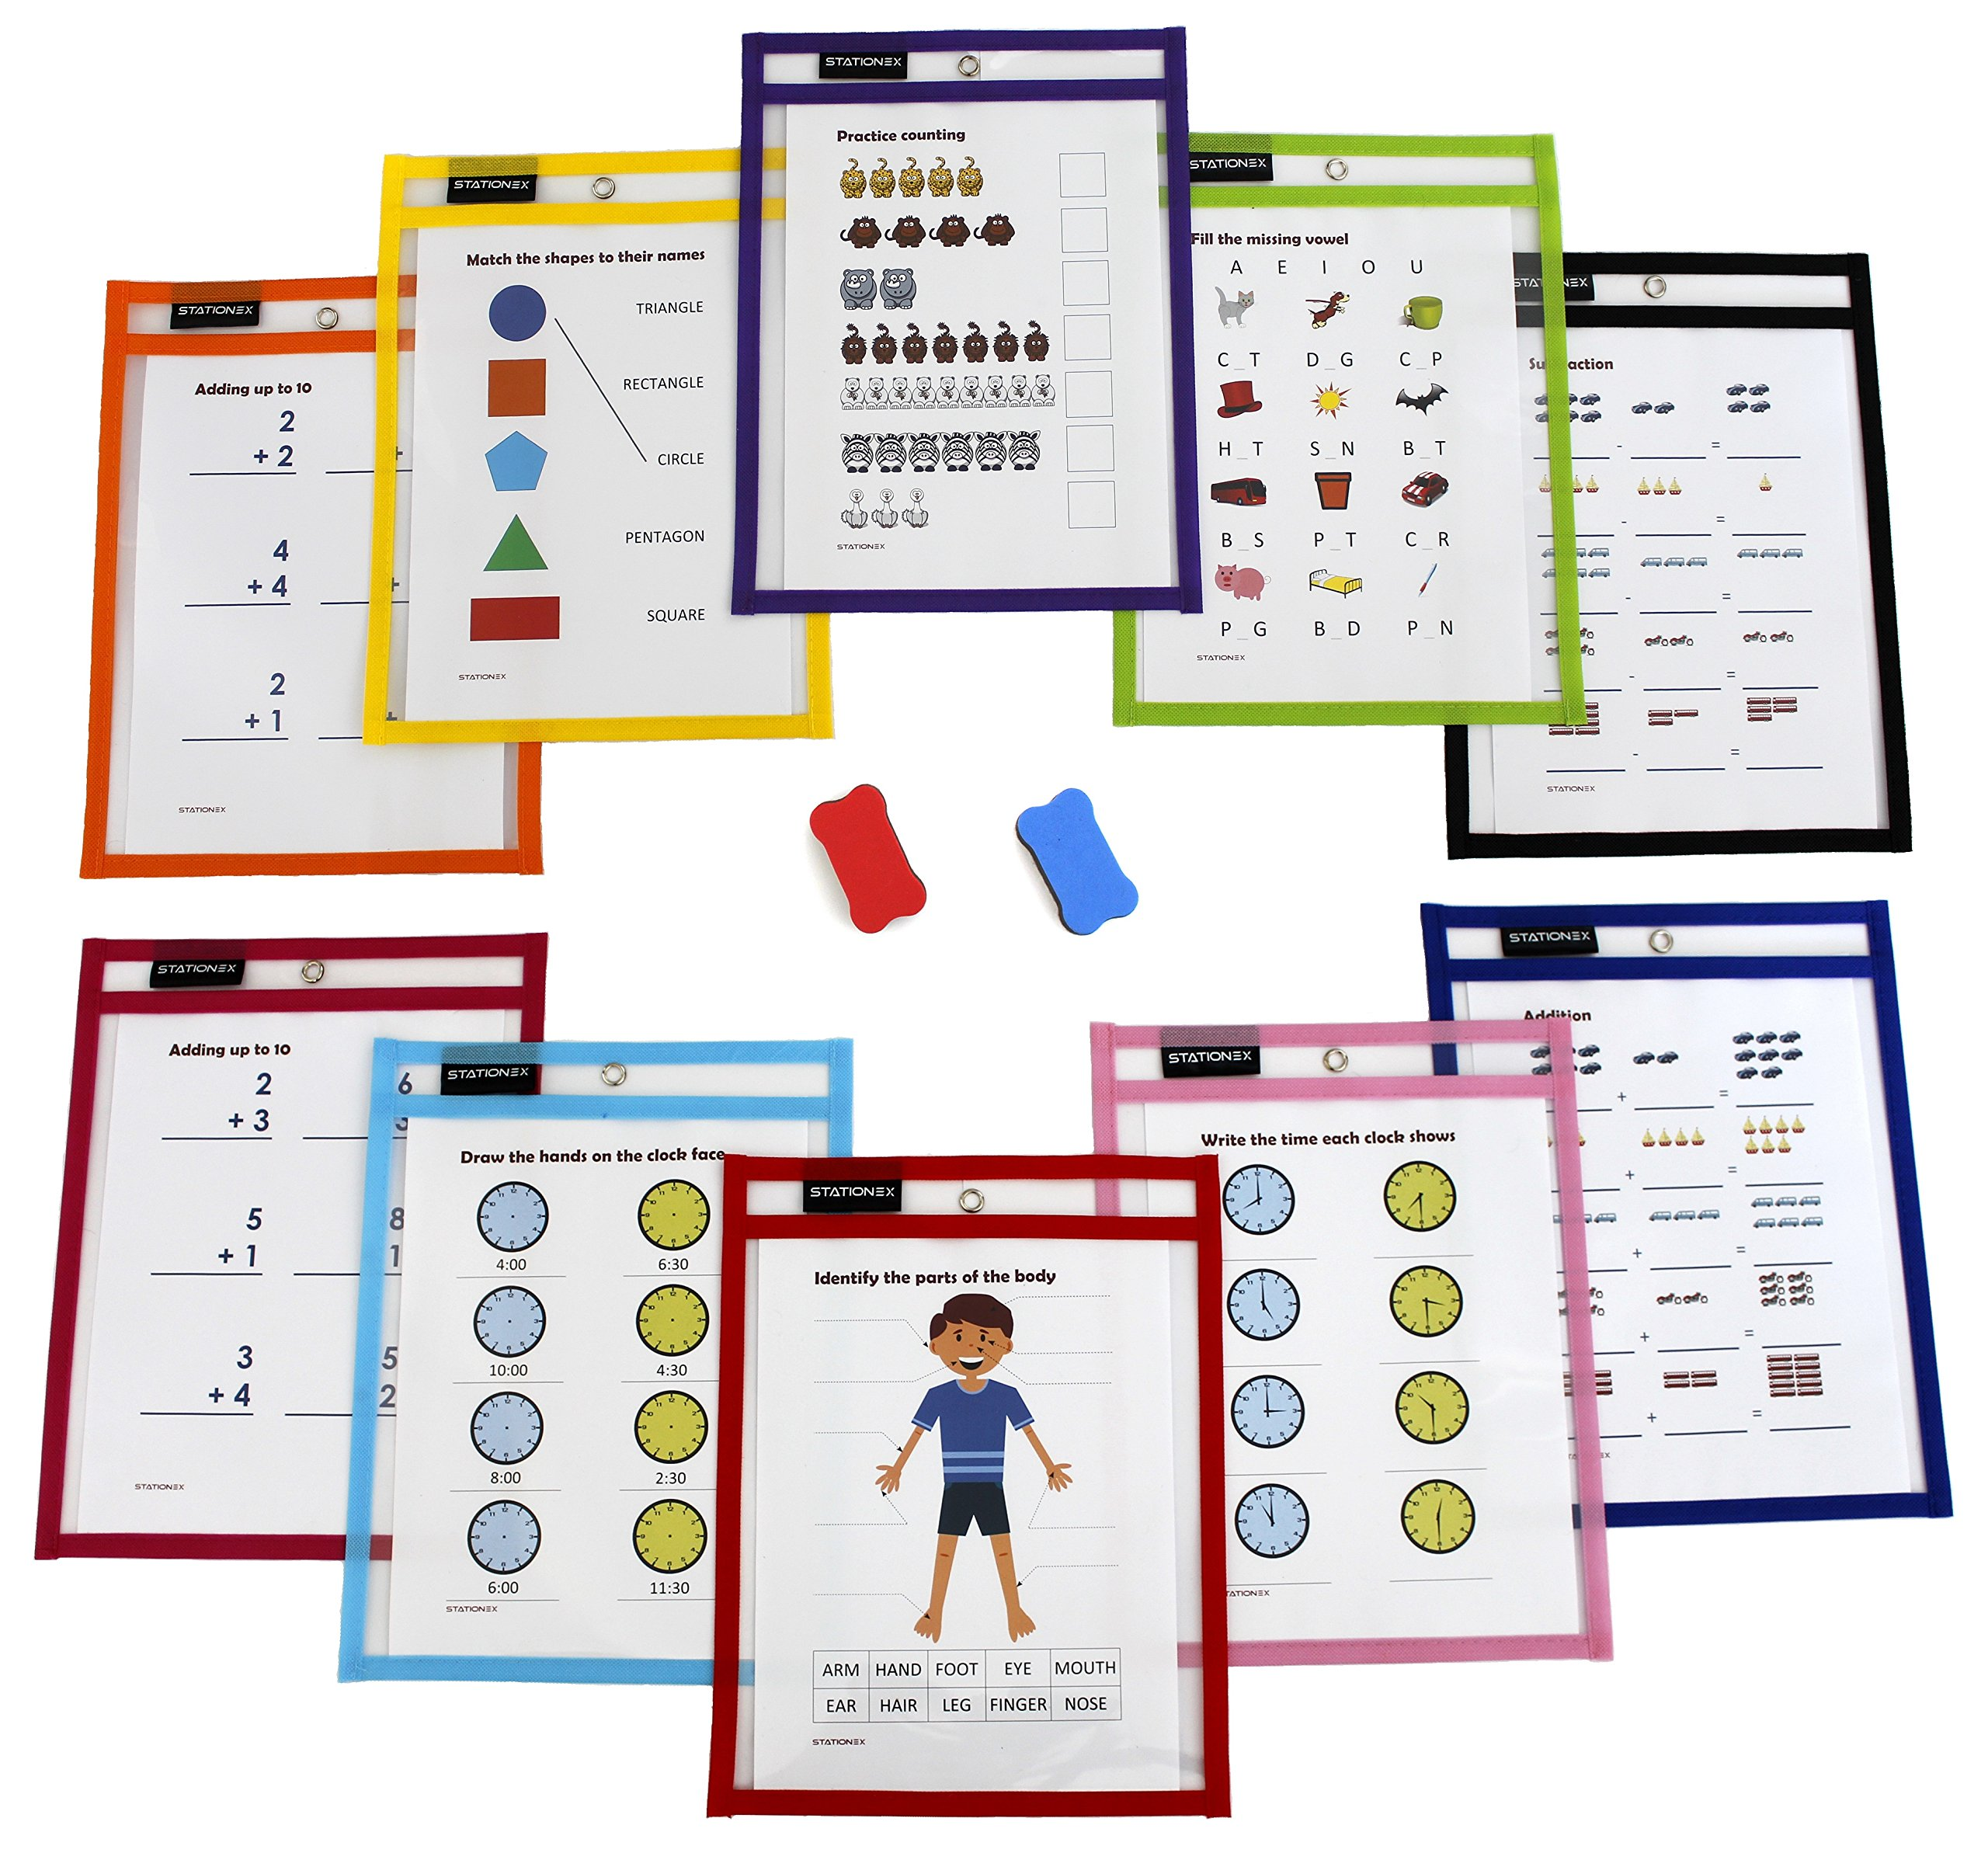 Reusable Dry Erase Pockets, Large Size 10 x 13 Inches, 10 Assorted Color Write and Wipe Off Sleeves + 2 Erasers per Pack - by Stationex by Stationex (Image #1)